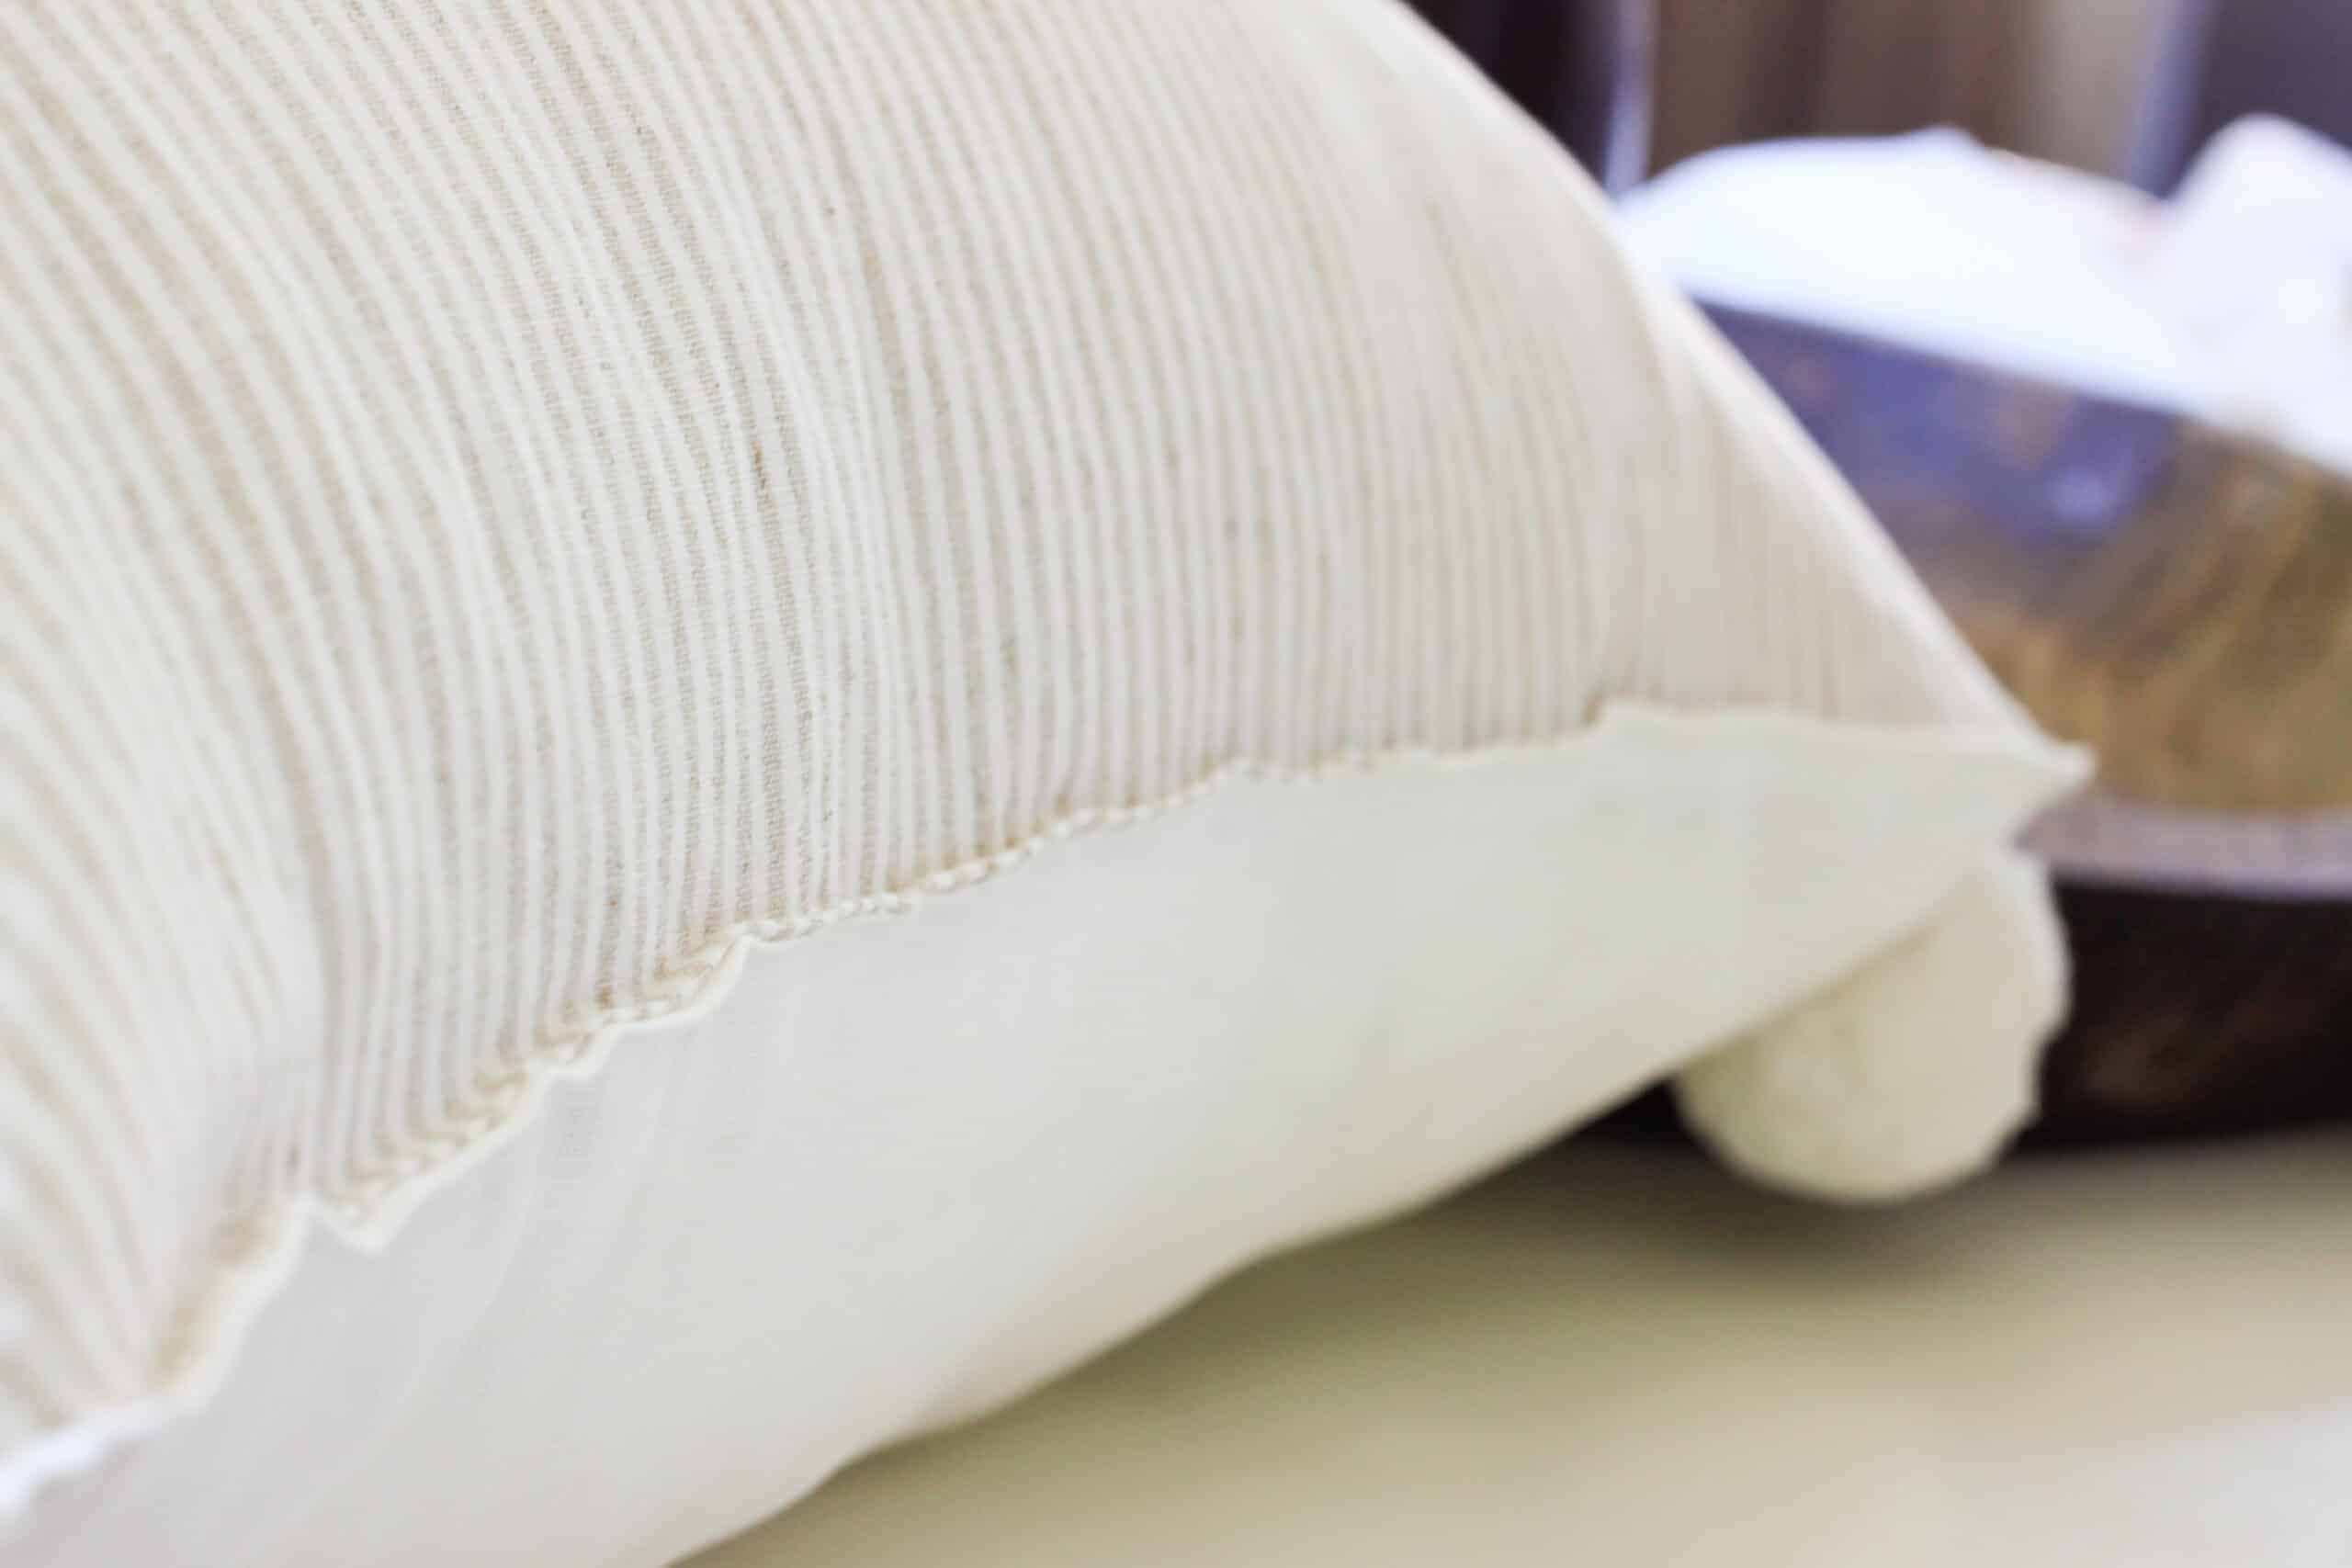 sewn seam of pin stripe pillow cover